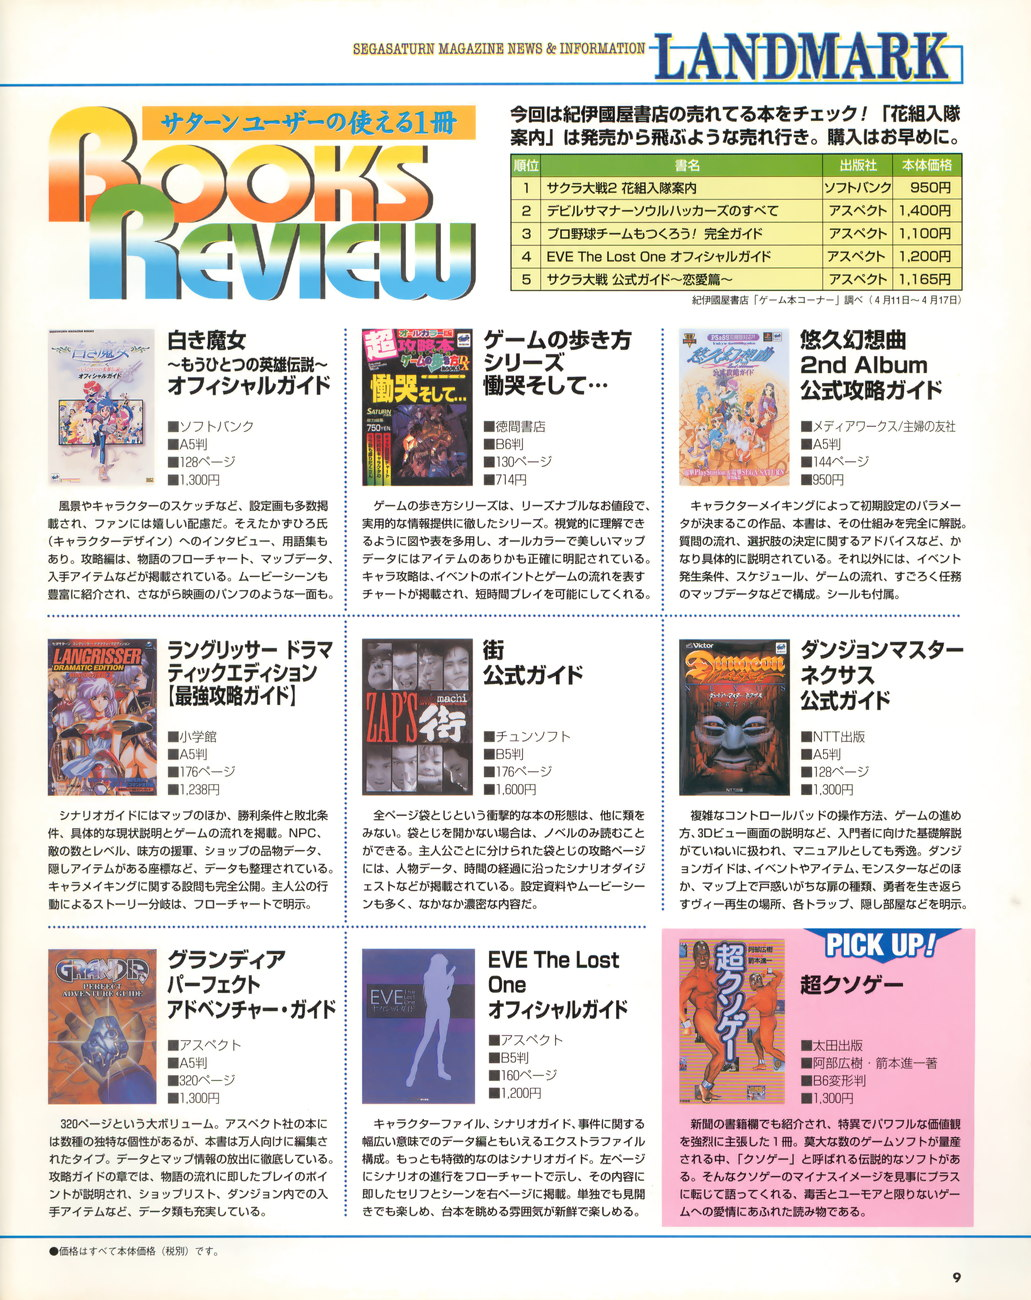 Dungeon Master Nexus Hint Book Review published in Japanese magazine 'Sega Saturn Magazine', Vol 14 08 May 1998, Page 11